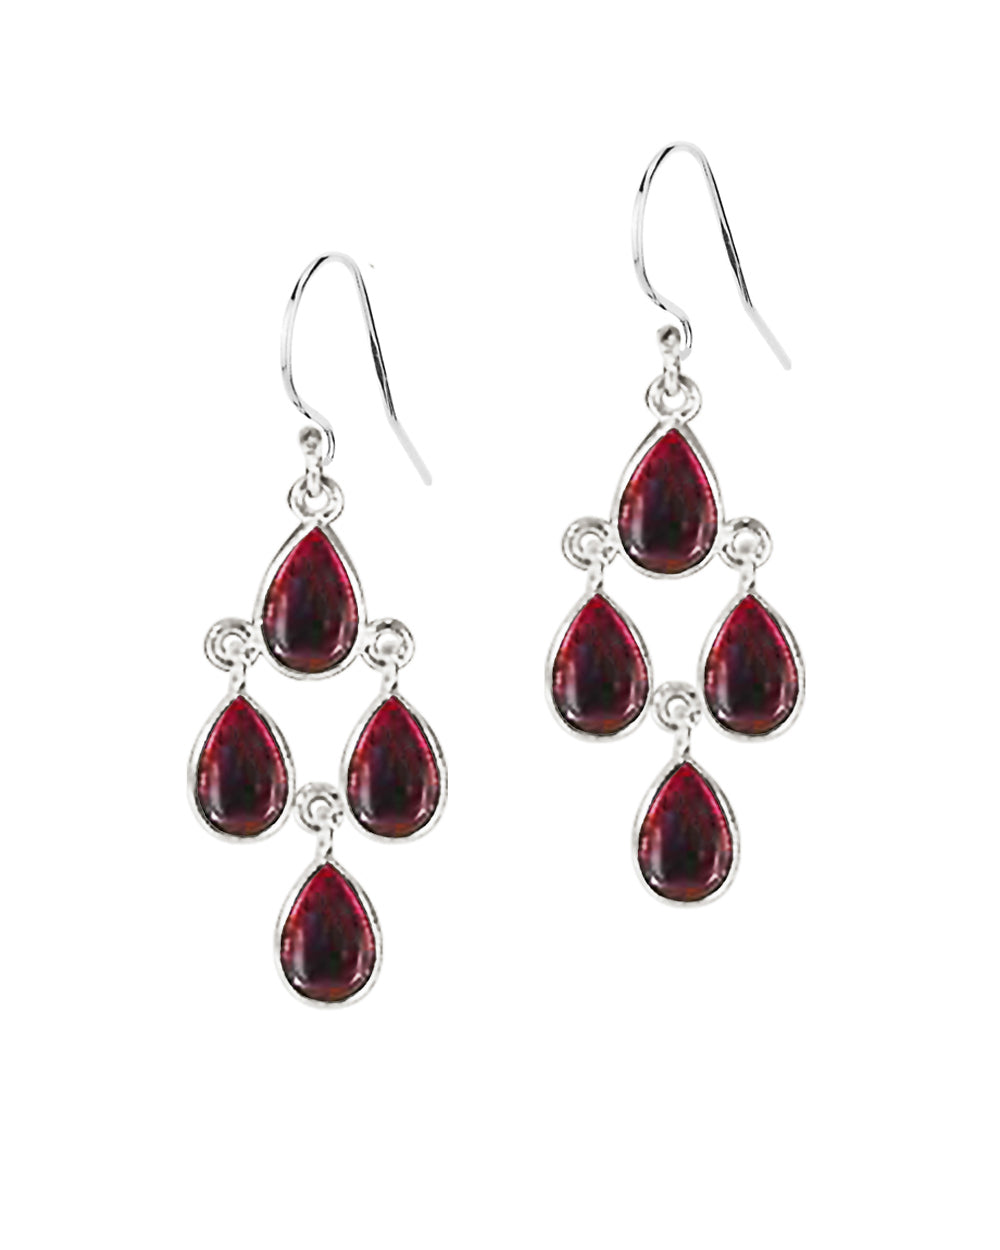 Earthly Elements Garnet Chandelier Earrings in Sterling Silver